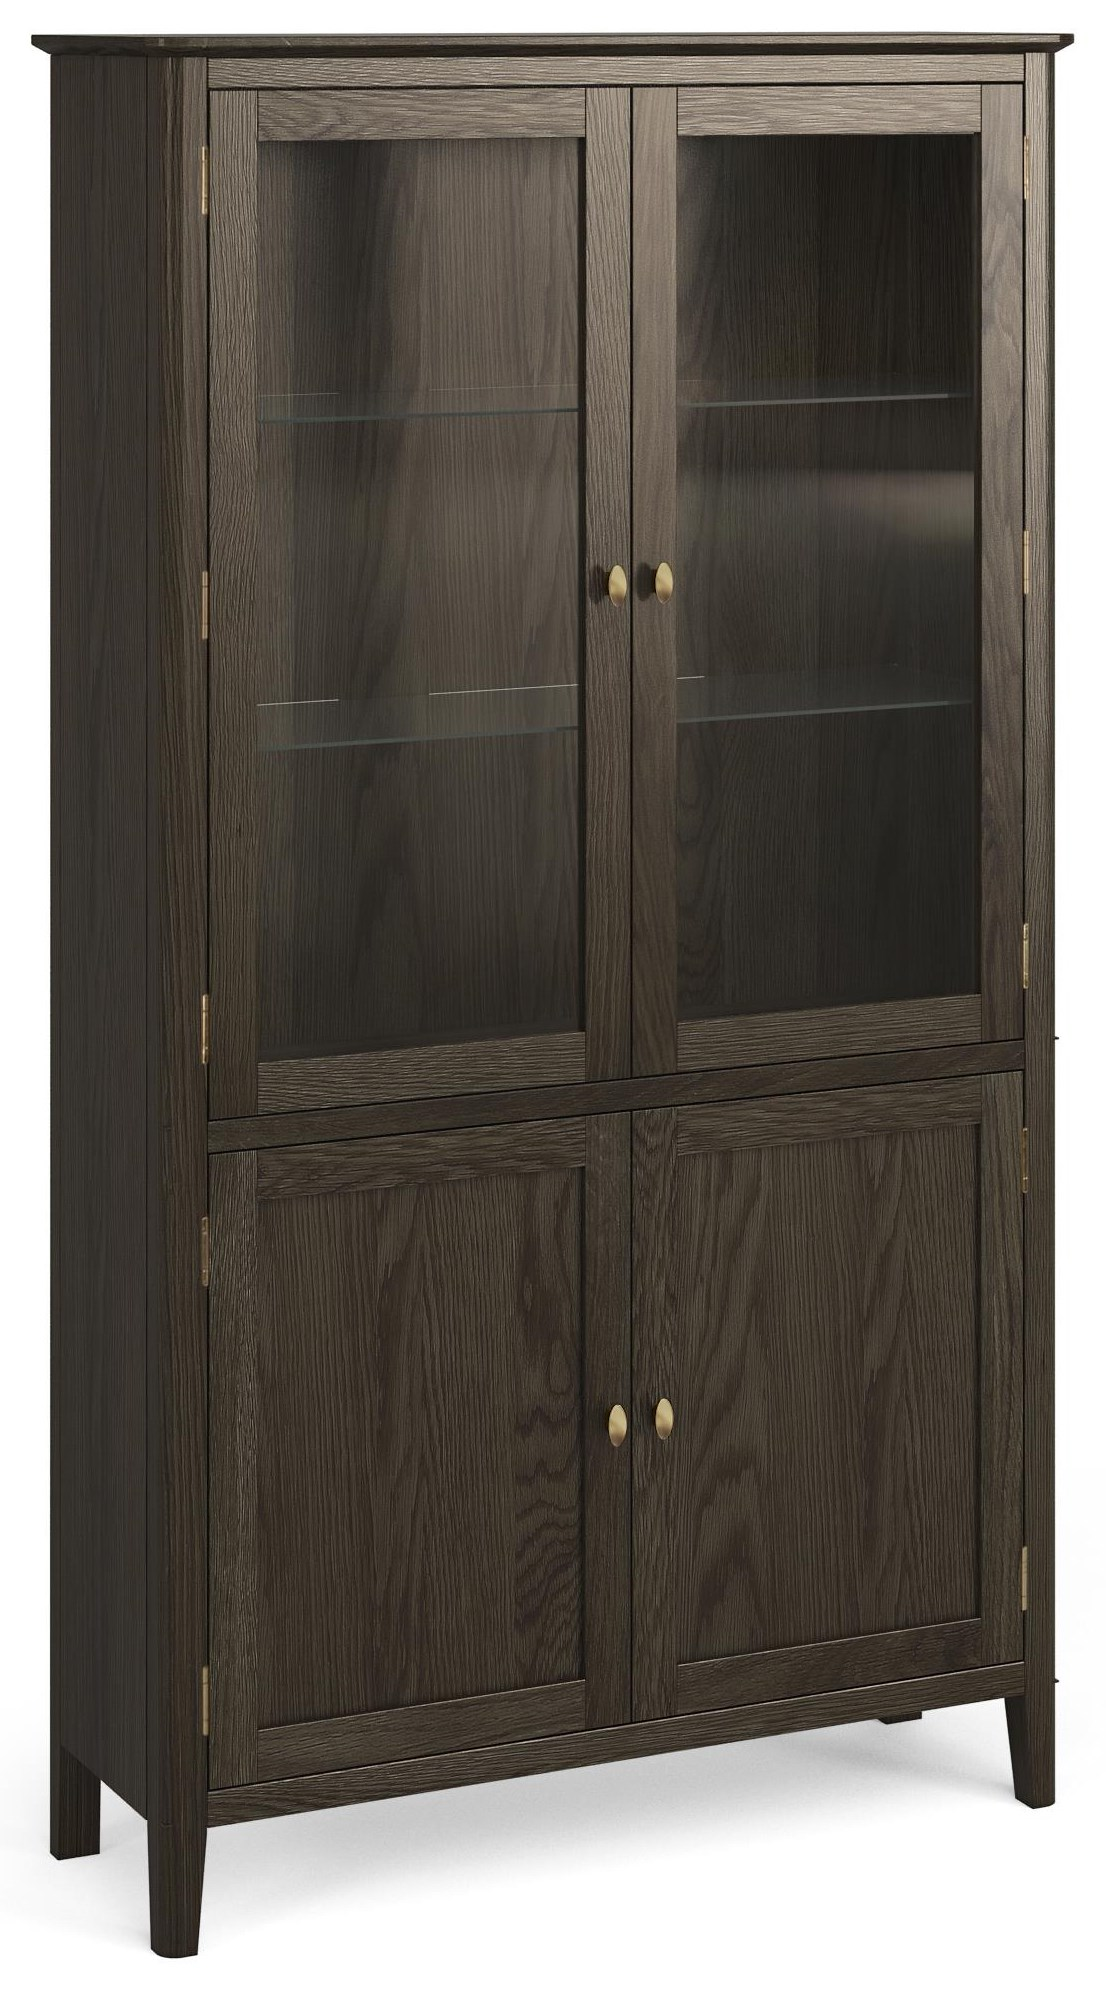 Amherst Display Cabinet by Global Home at HomeWorld Furniture